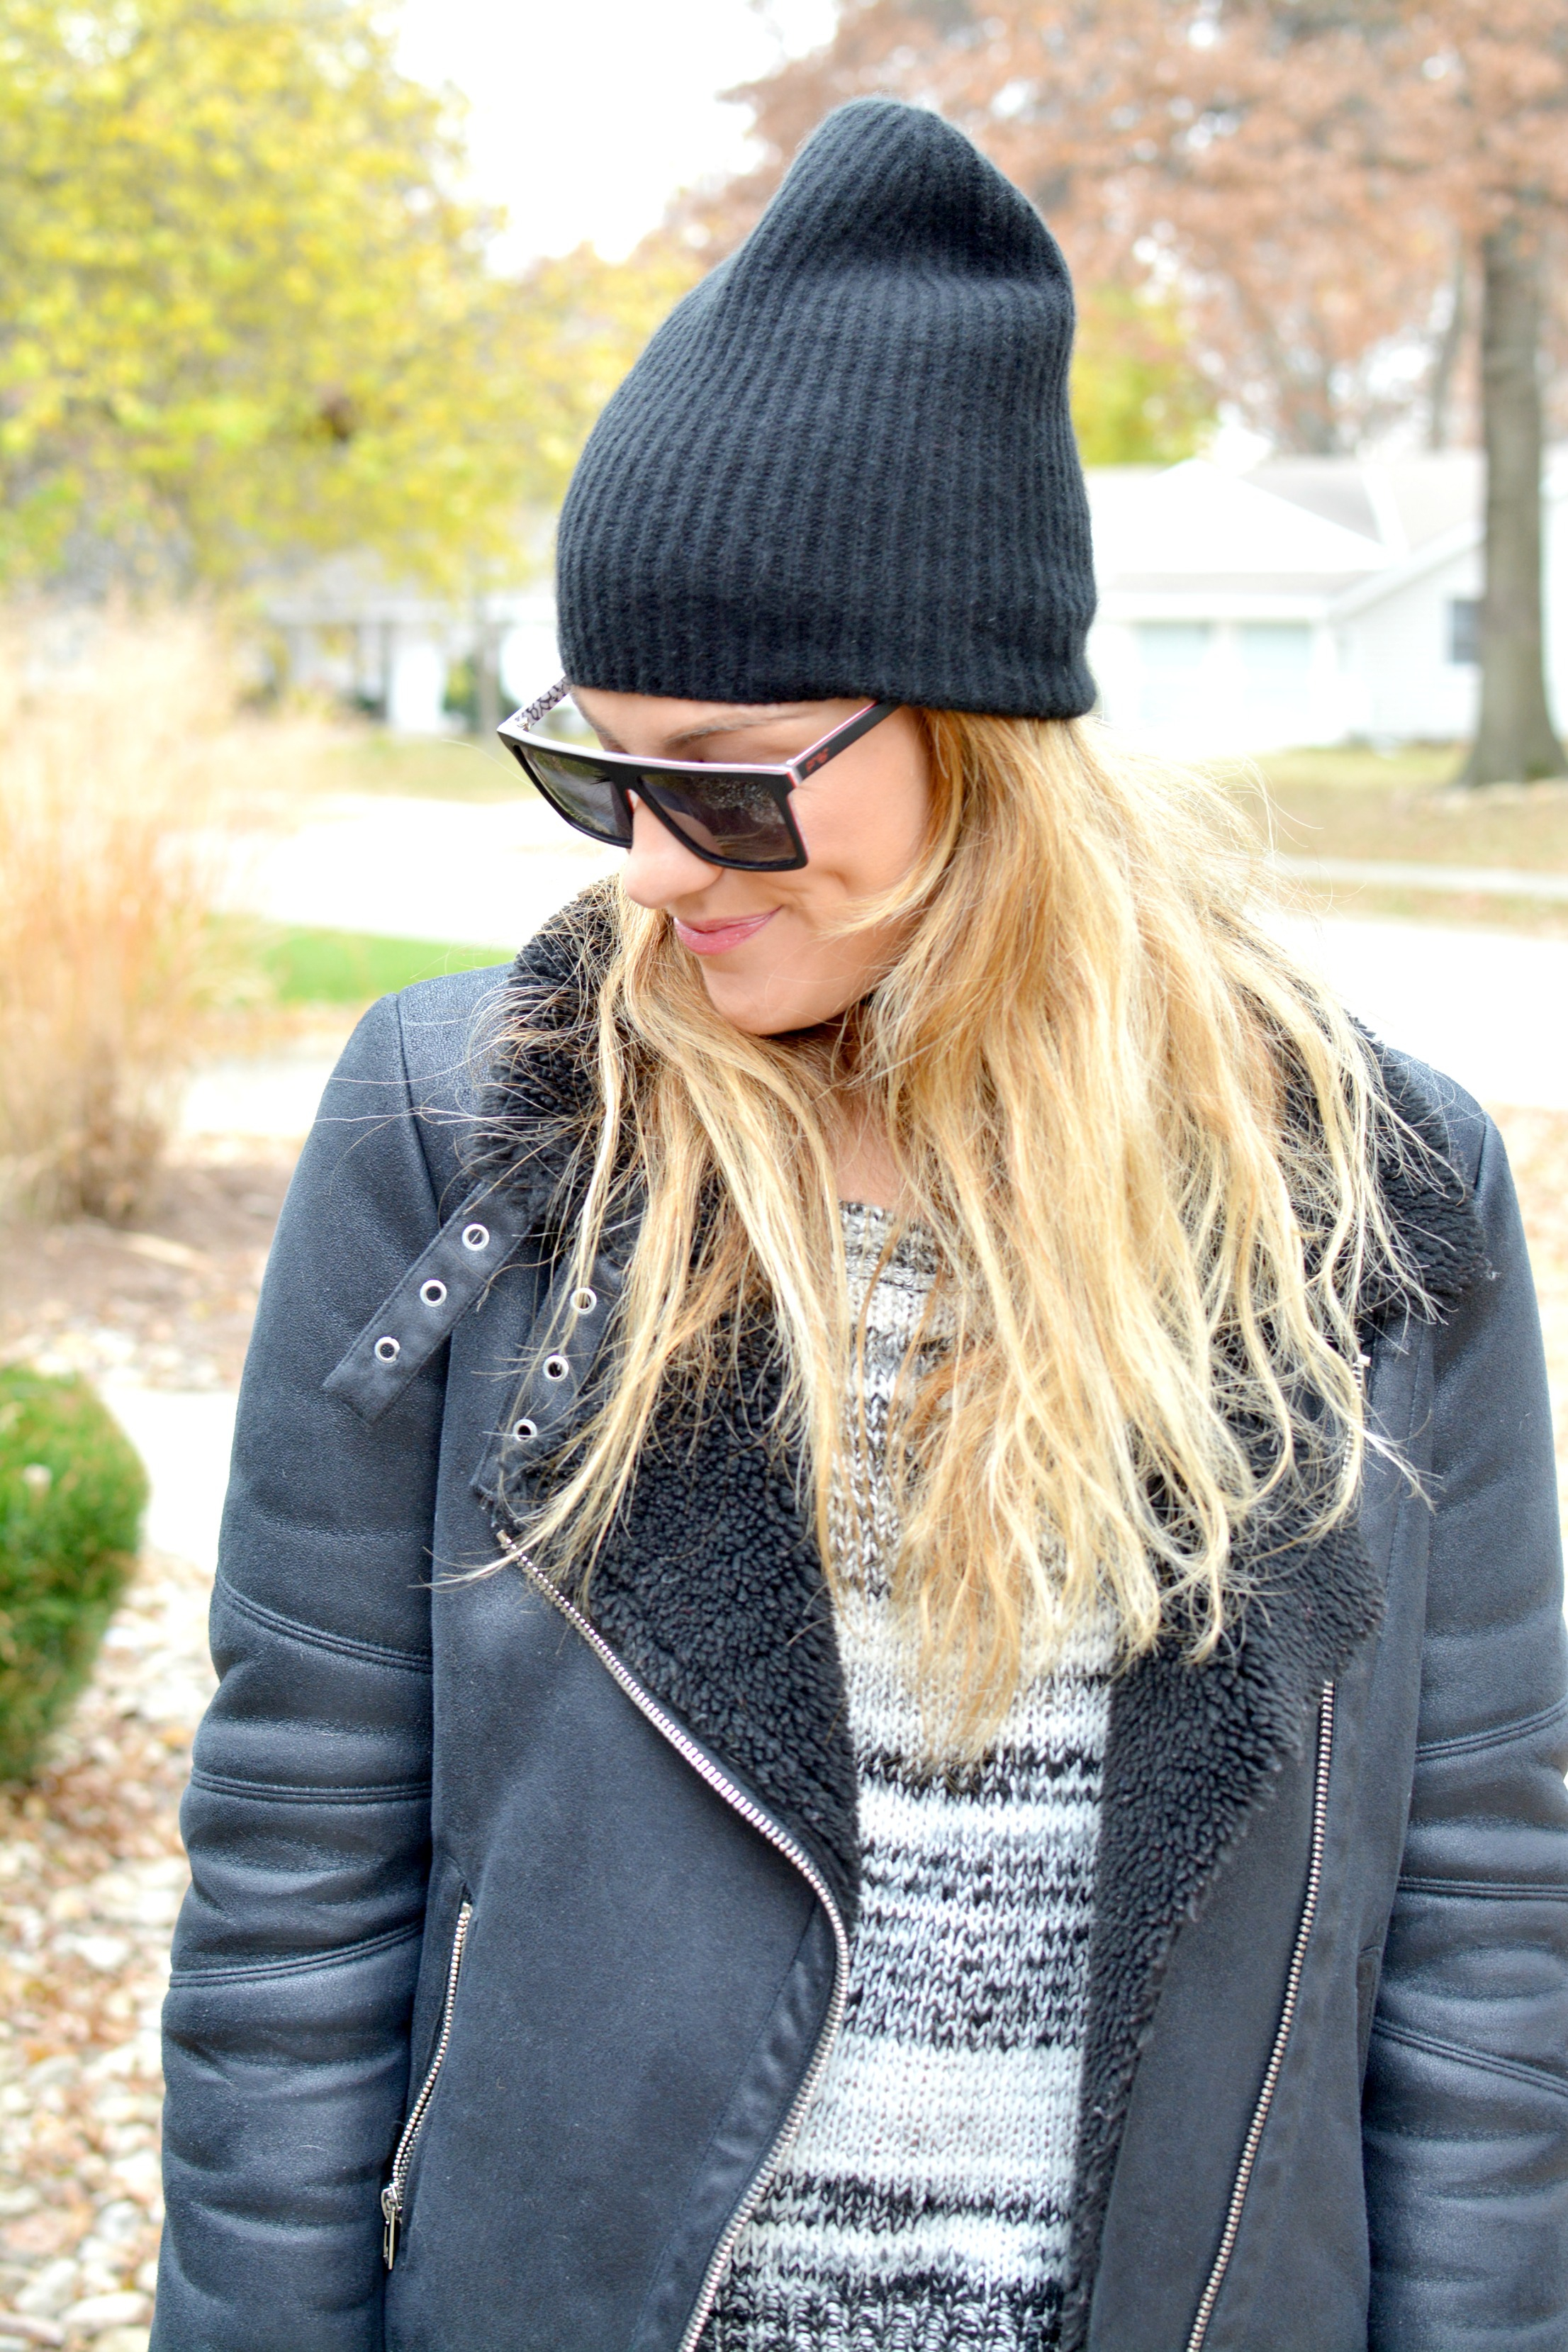 Ashley from LSR in a shearling jacket and sweater